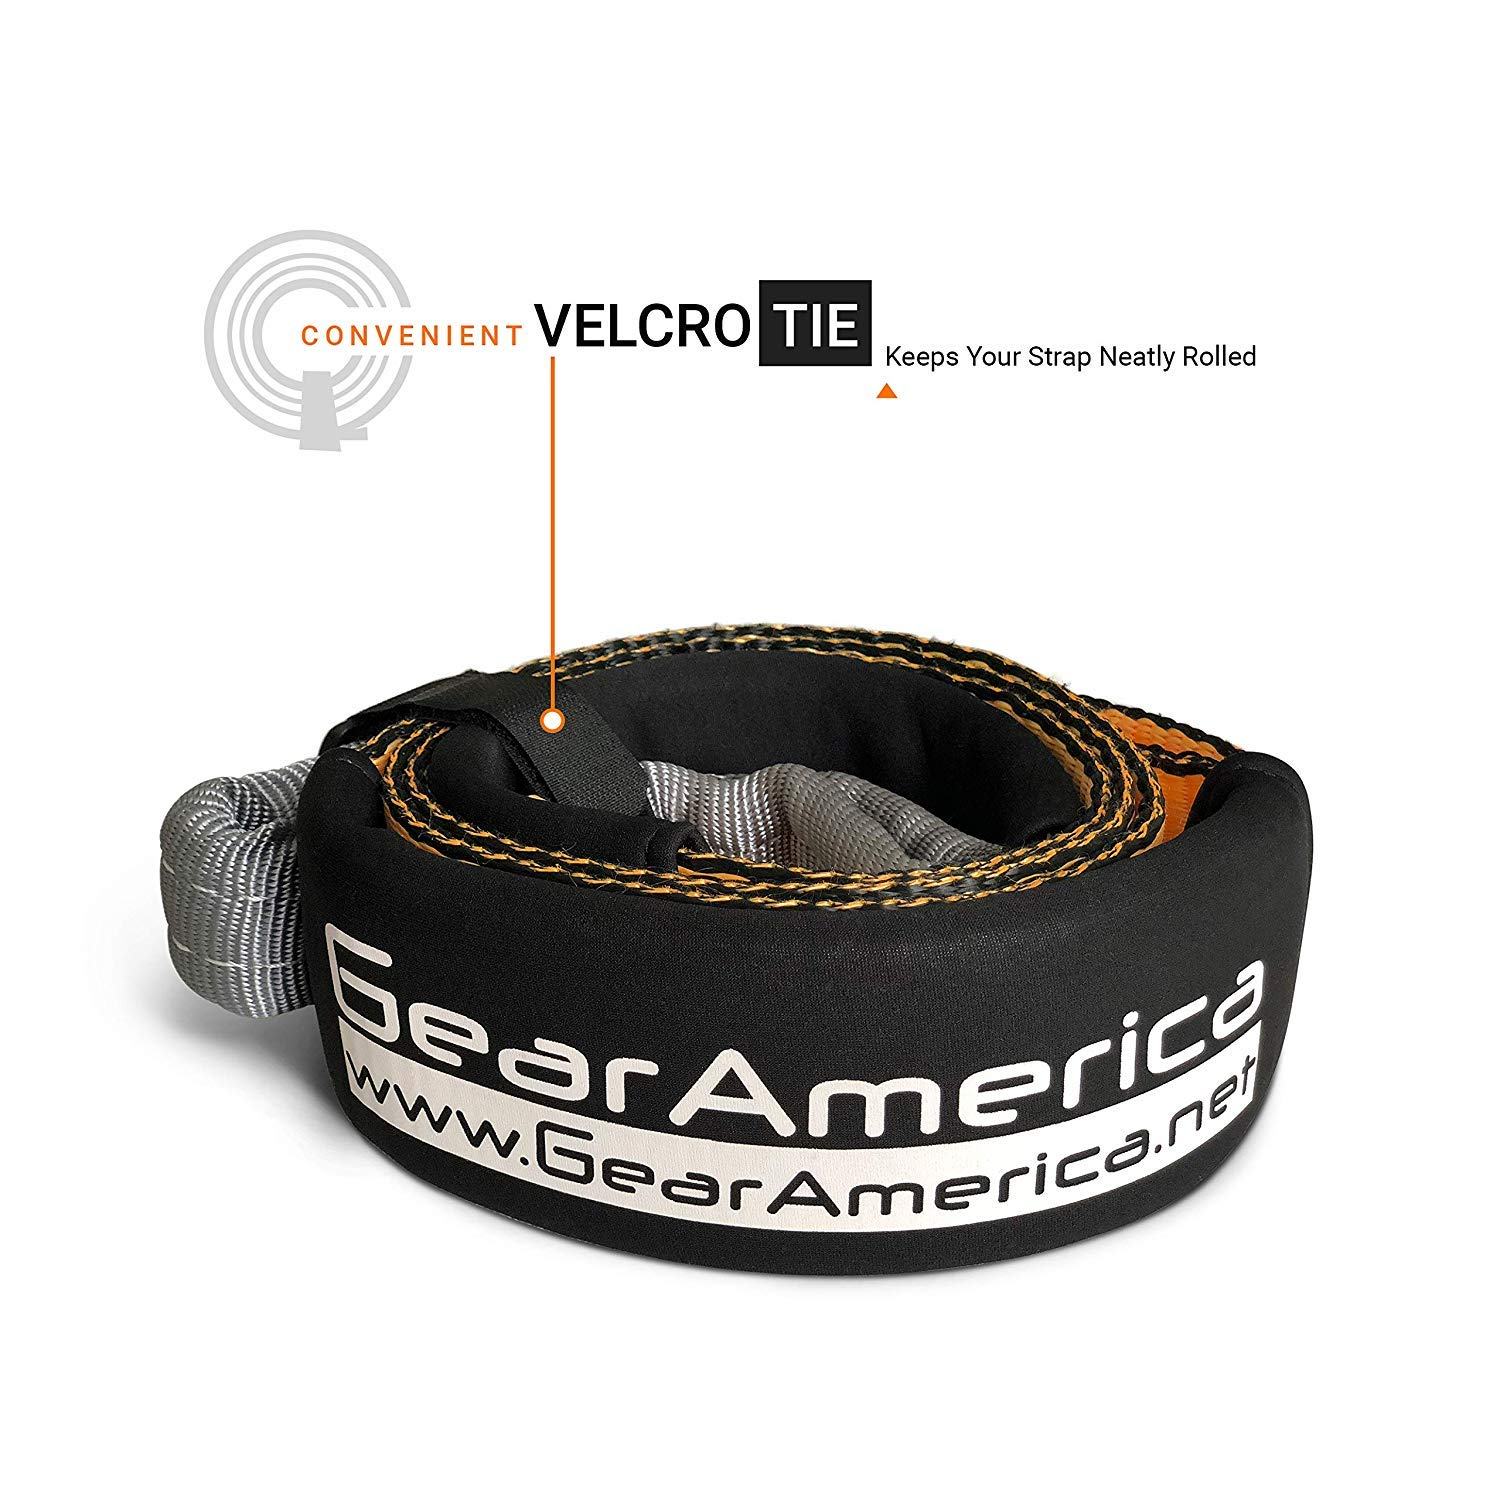 17.5 Tons Recovery Tow Straps 3 x20 Emergency Off Road 4x4 Towing GearAmerica Heavy Duty Lab Tested 35,054 lbs Protective Sleeves Strength 2PK Triple Reinforced Loops Free Storage Bag ALMARO